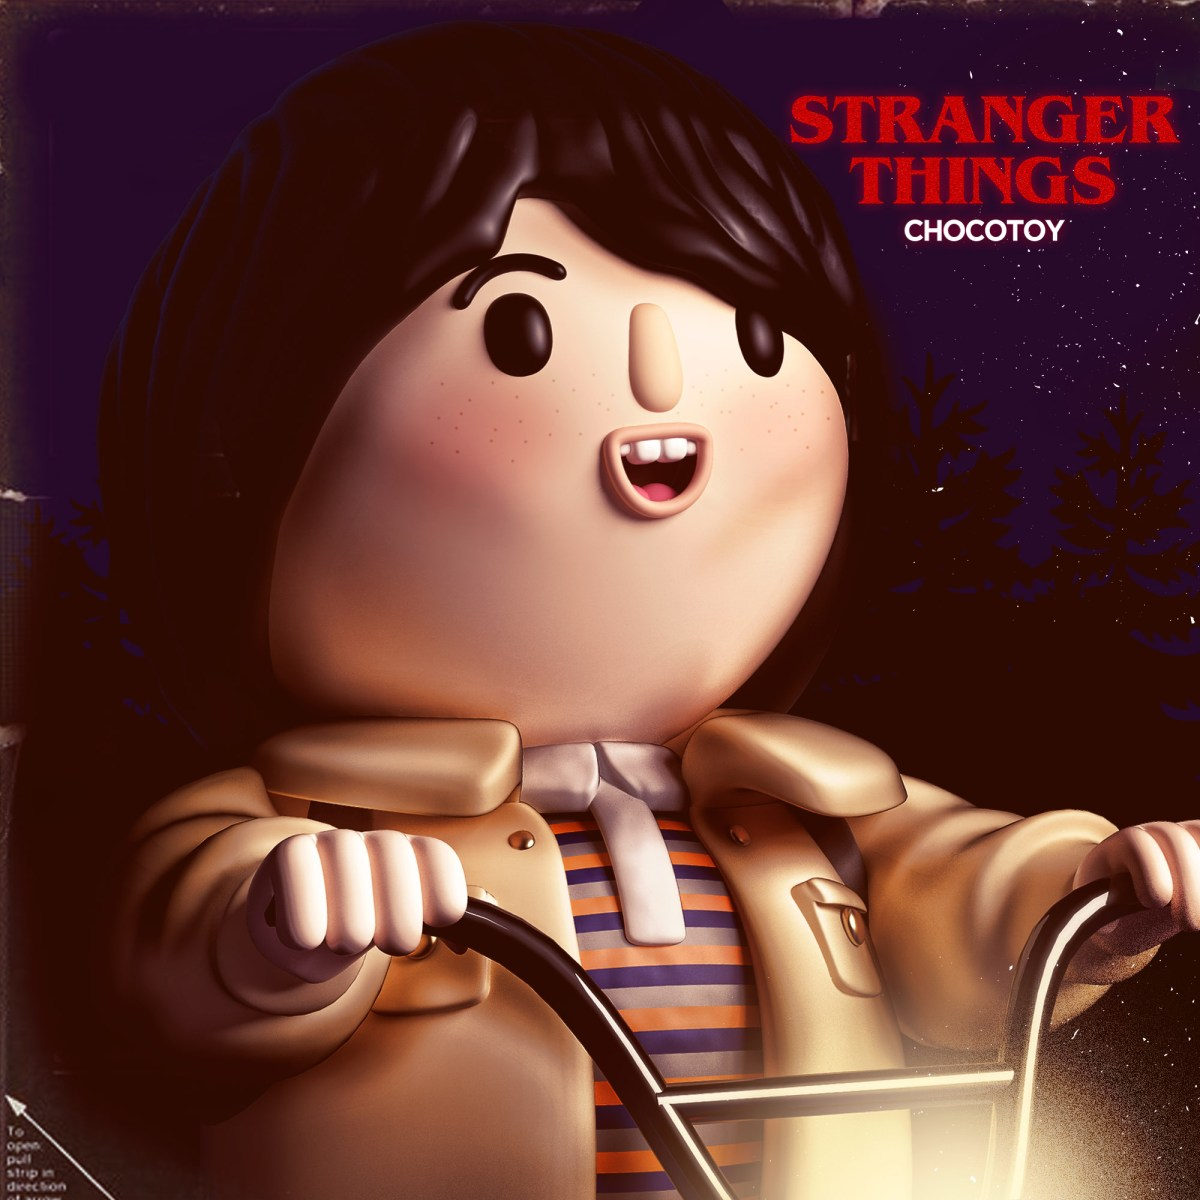 stranger-things-chocotoy-moss-and-fog-3